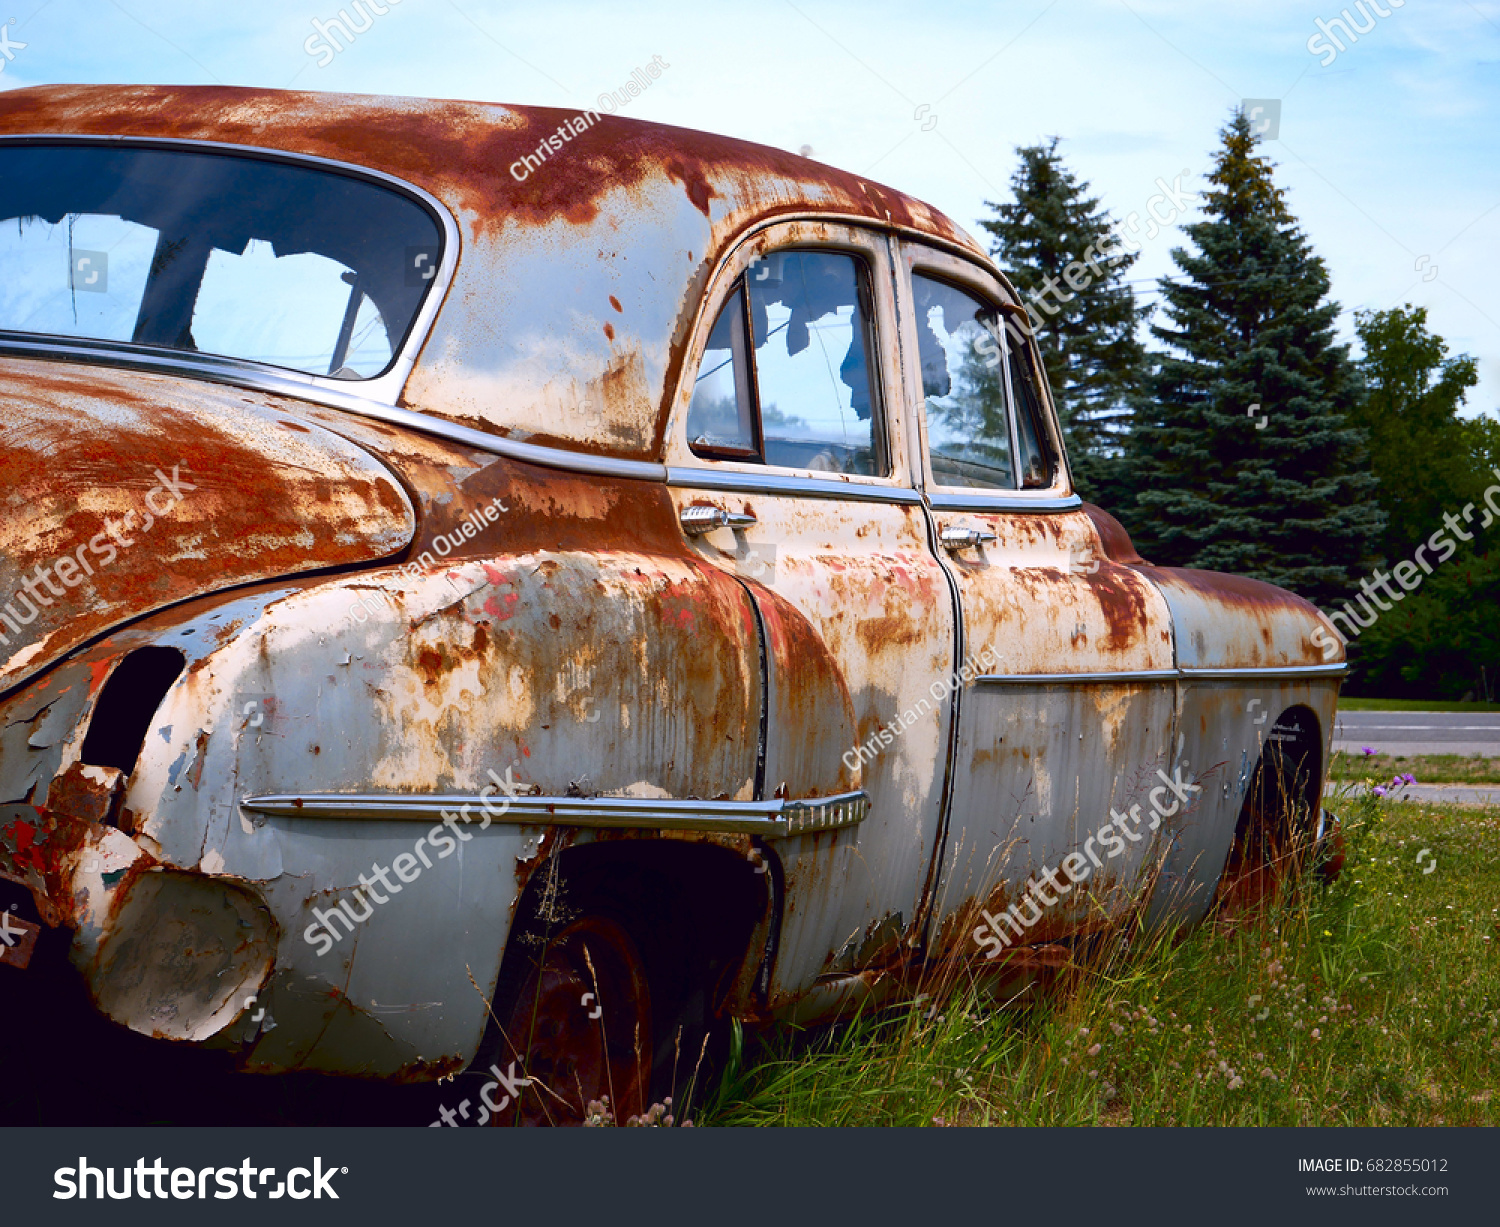 Old Rusty Car Stock Photo 682855012 - Shutterstock